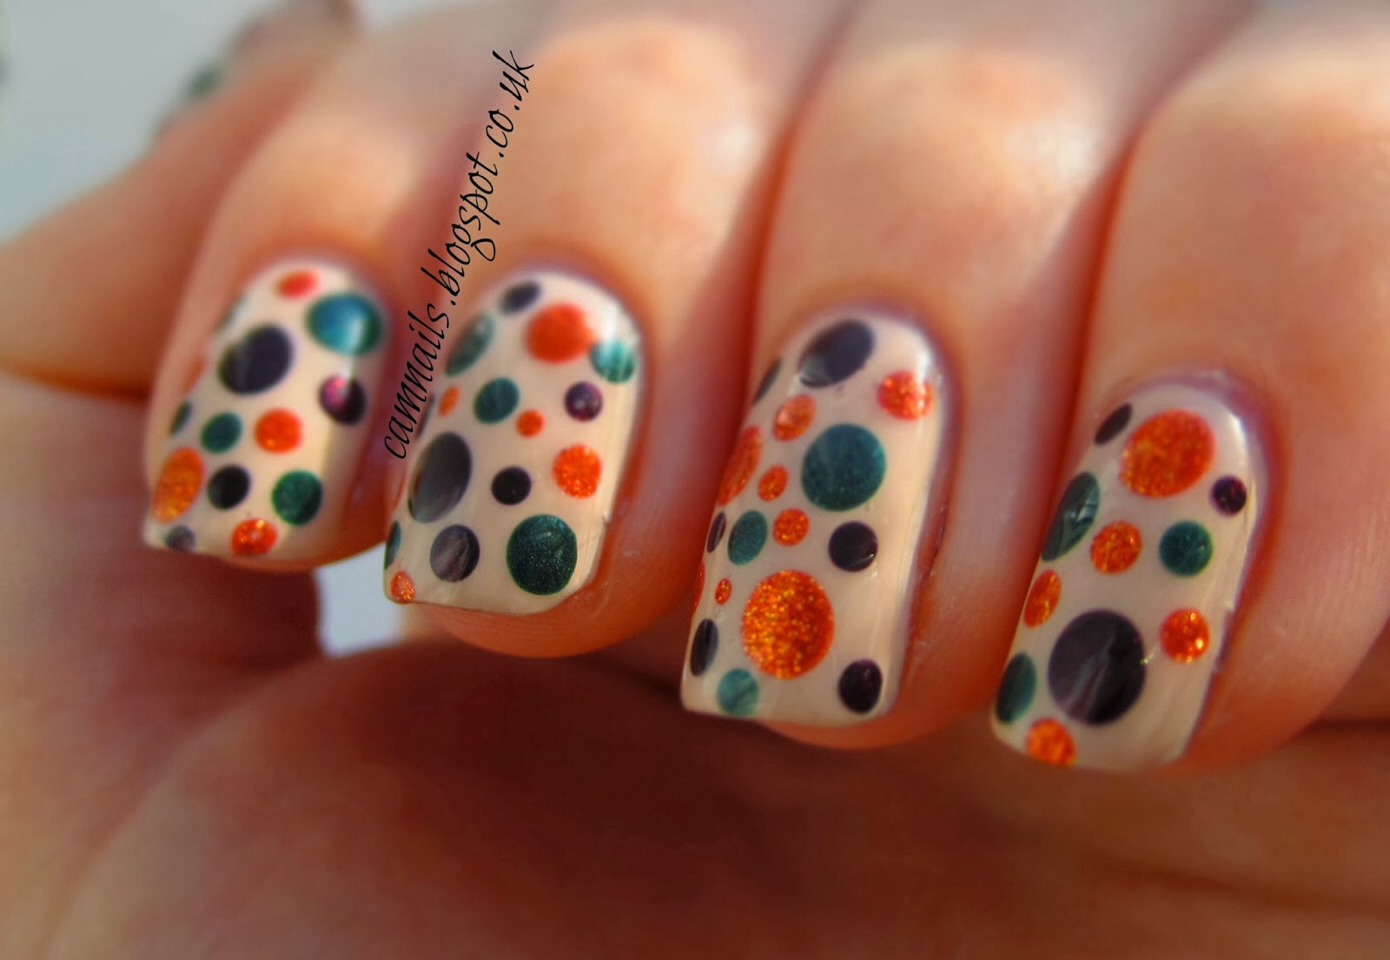 The dotty nail is the ultimate simple nail design and you can't go wrong with it! Enjoy these simple ways to achieve this fantastic look, effort free!